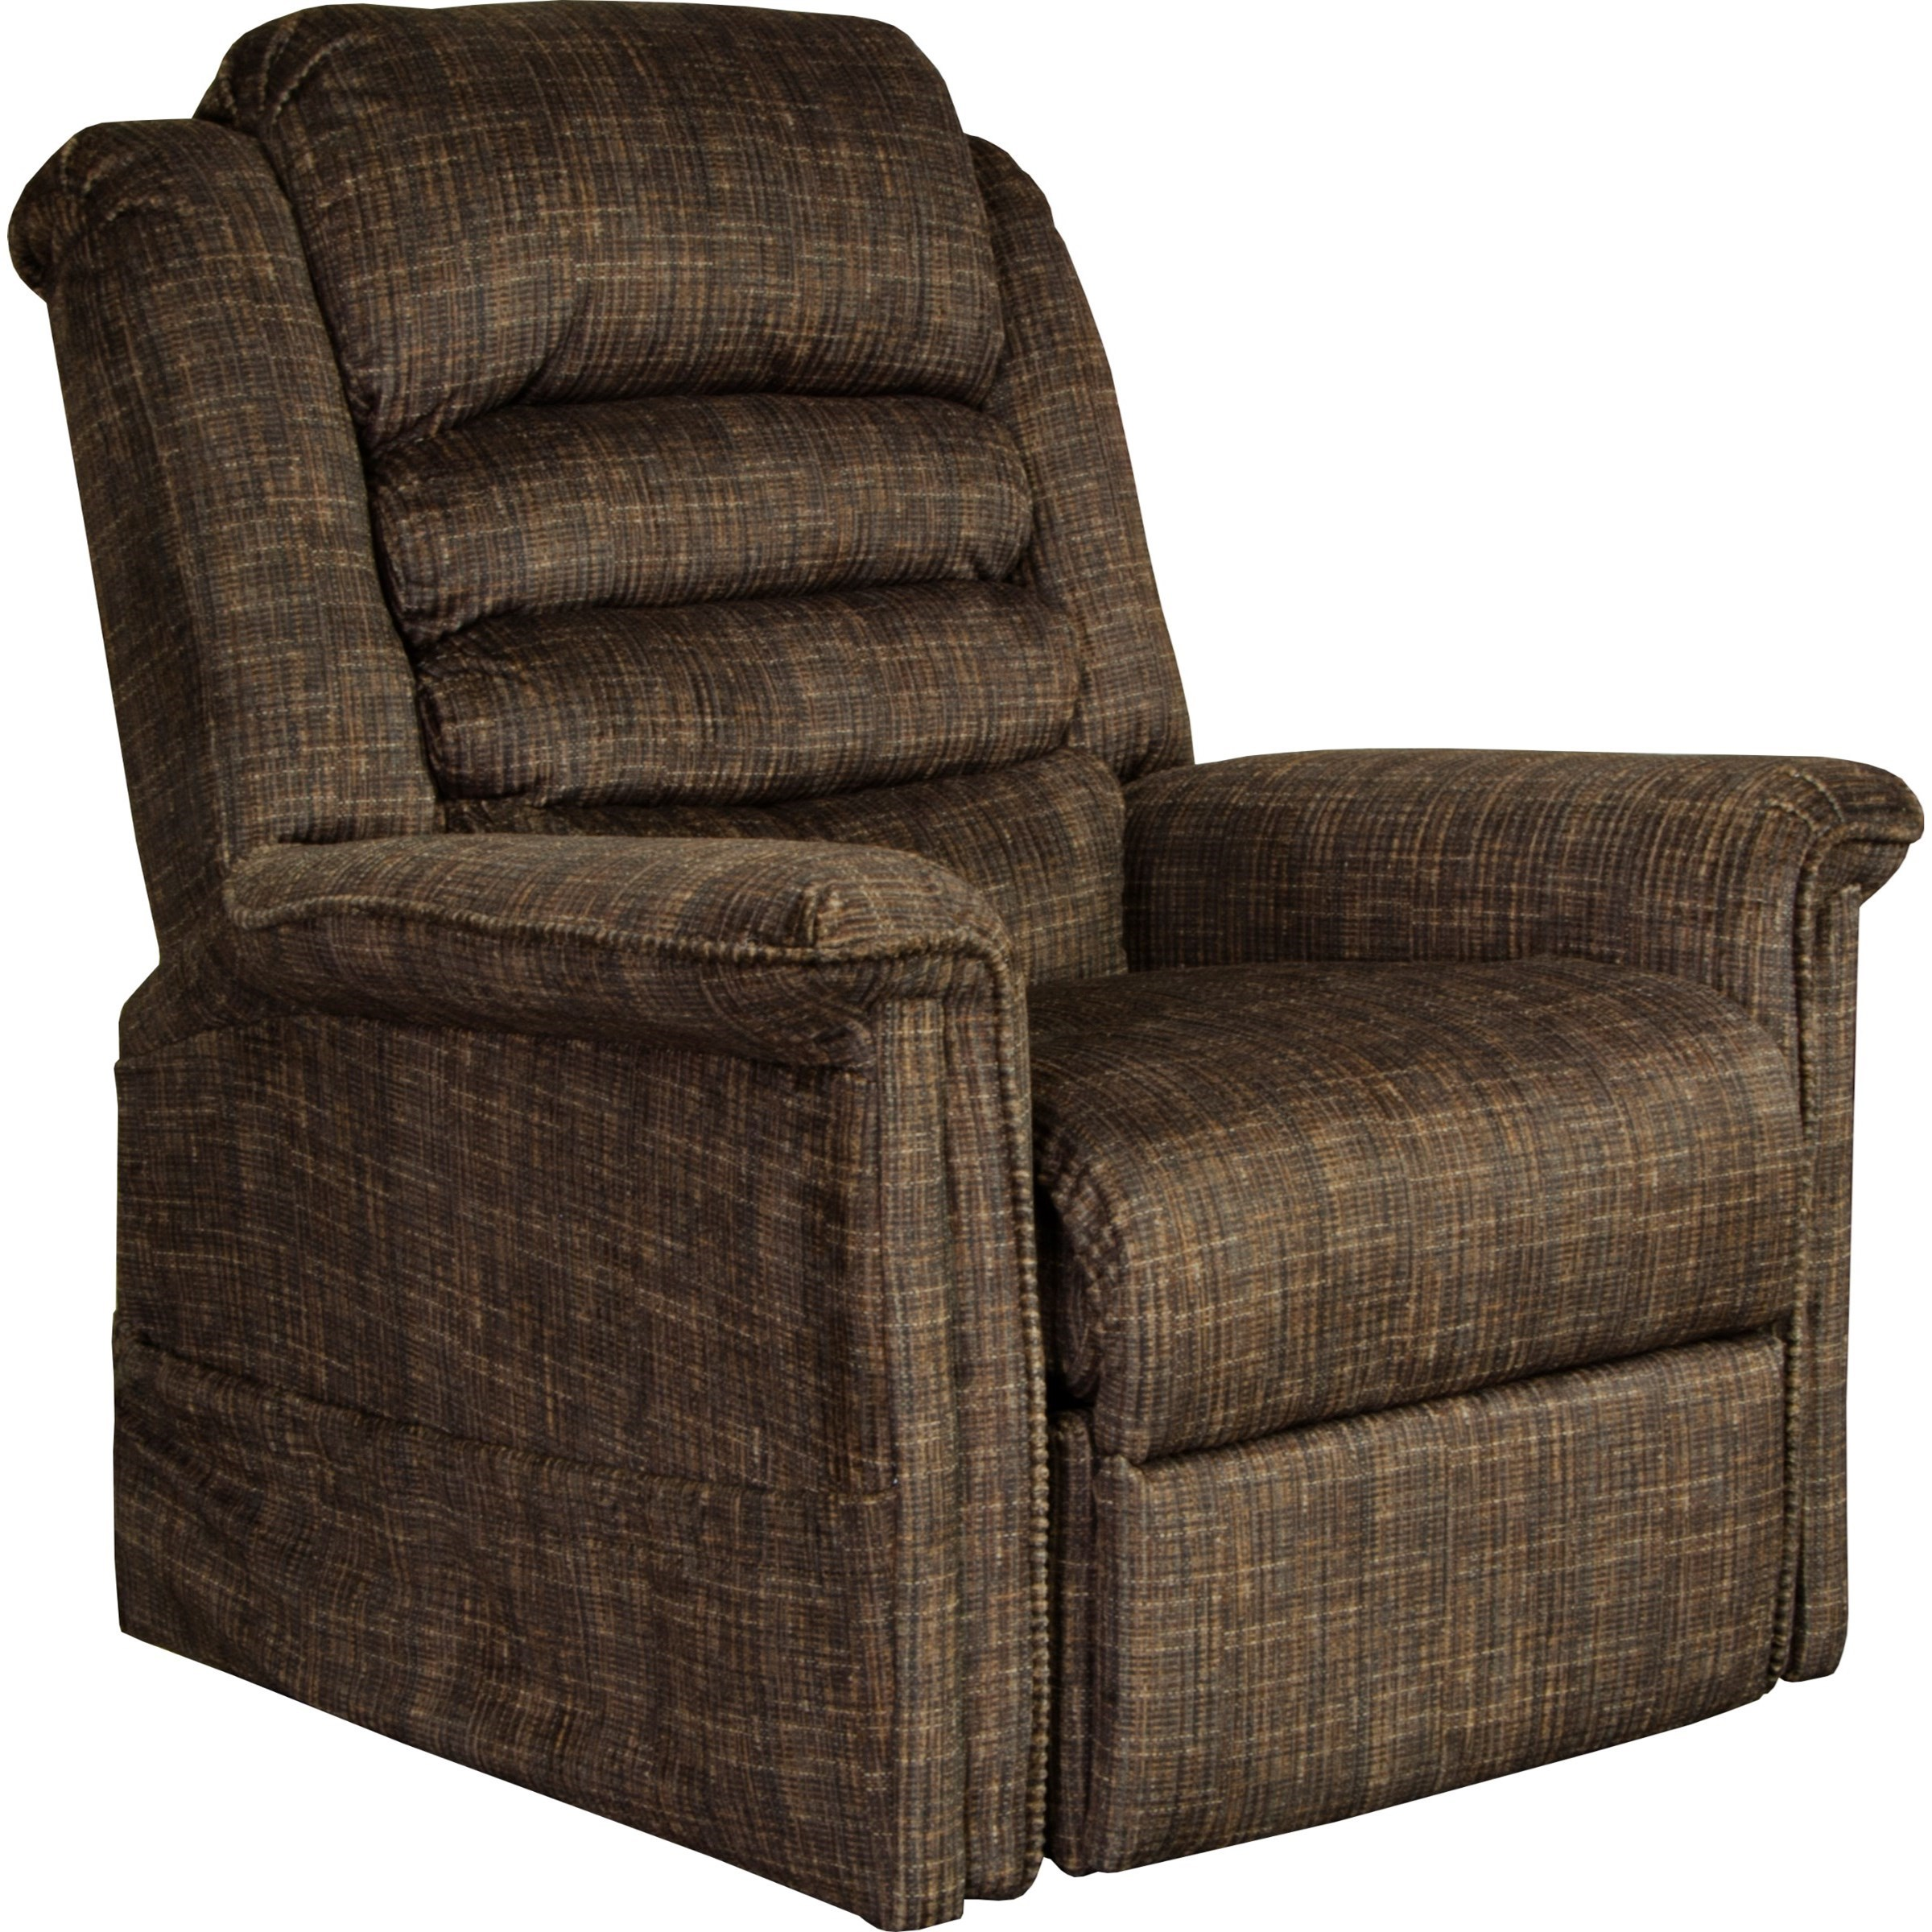 4825 Power Lift Recliner by Catnapper at Standard Furniture